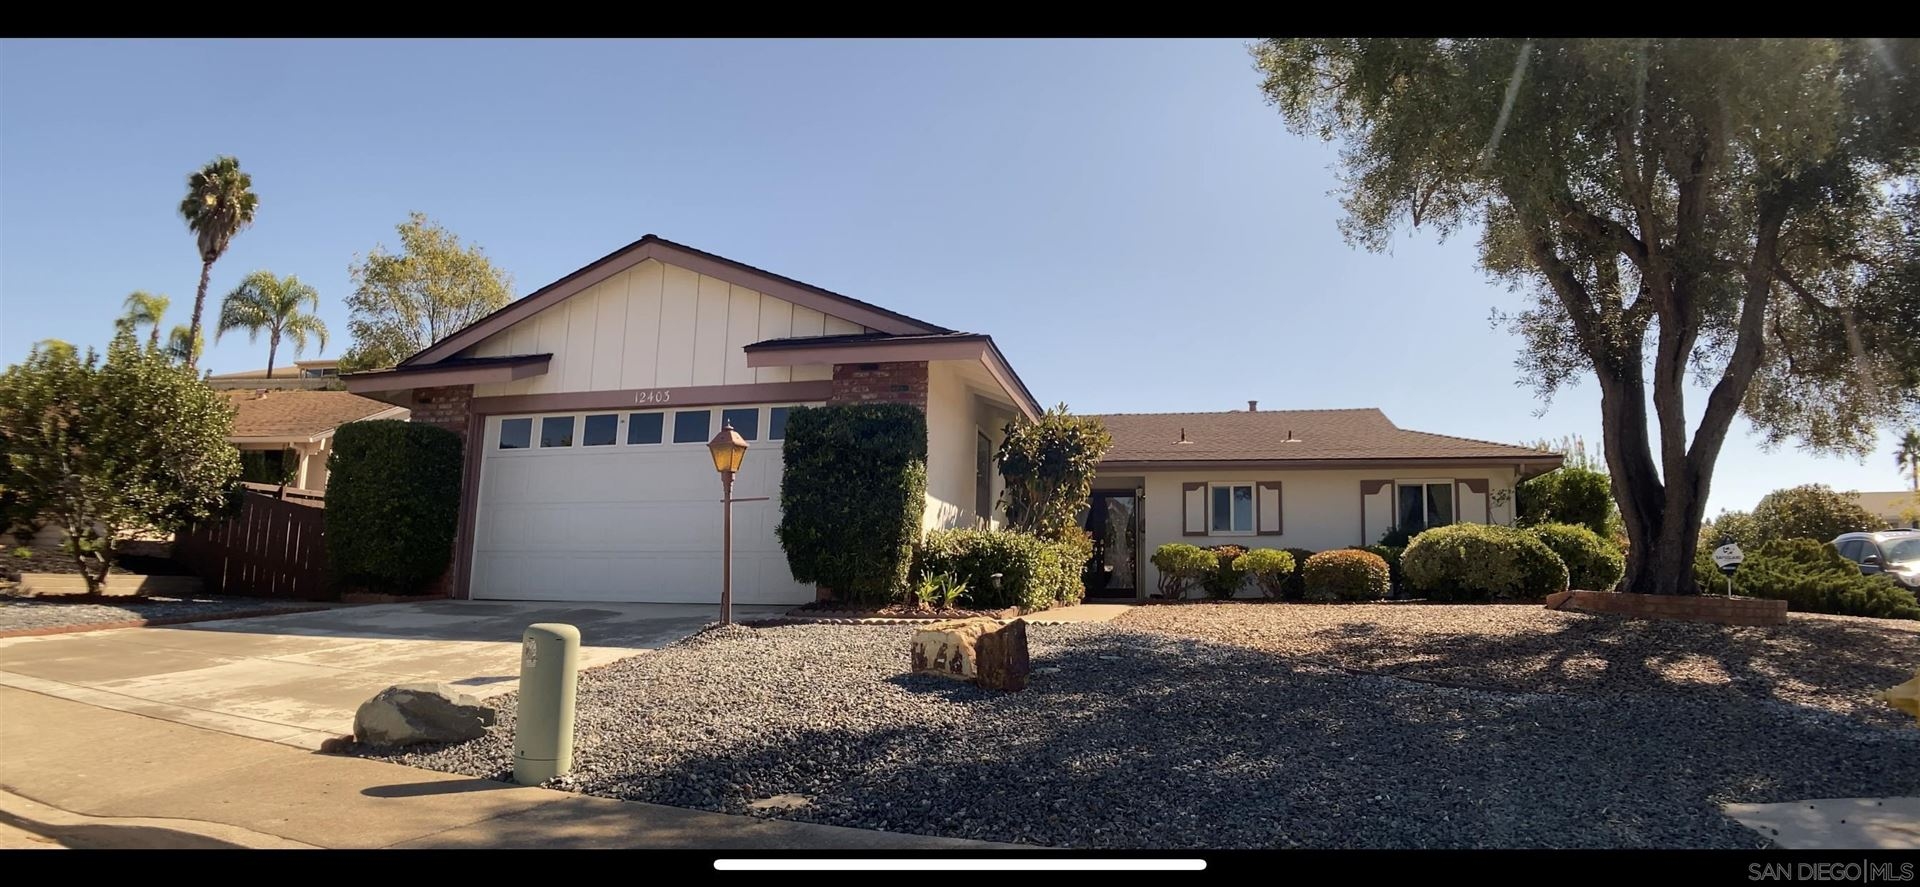 Photo of 12403 Pipo, San Diego, CA 92128 (MLS # 210029743)